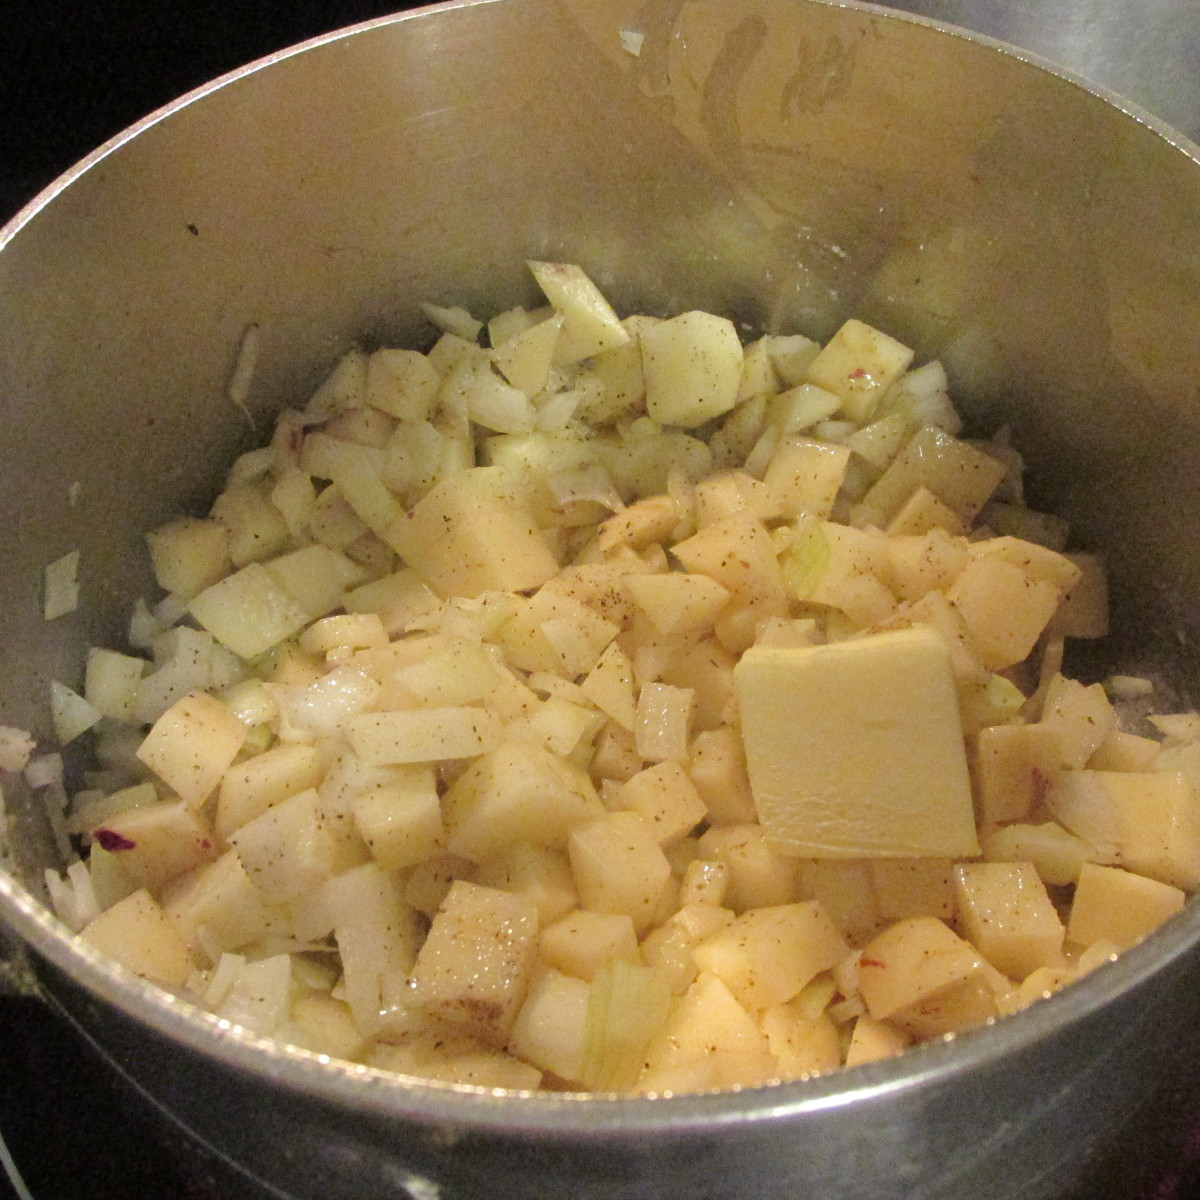 The onions, seasonings, and potatoes cooking with butter.